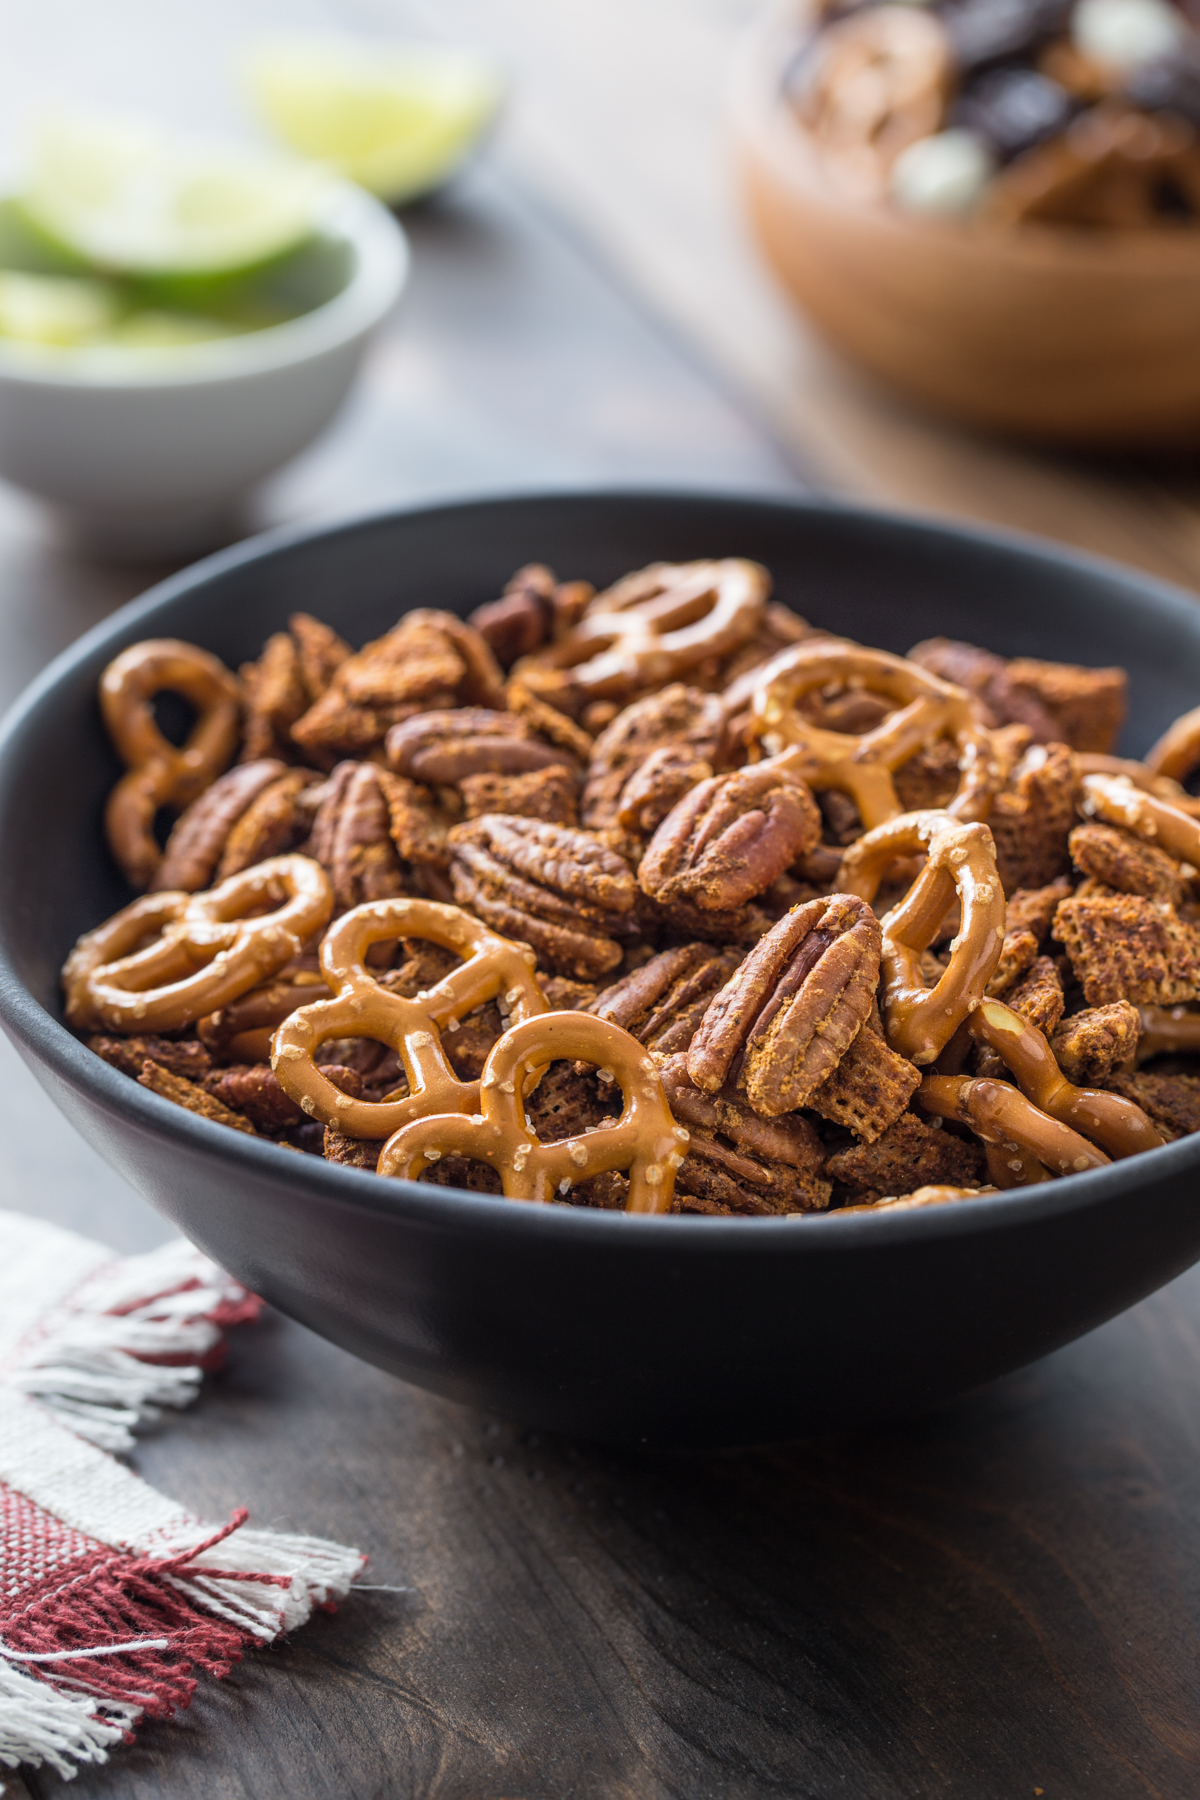 Chili Lime Pecan Snack Mix | Pecan Snack Mixes Three Ways